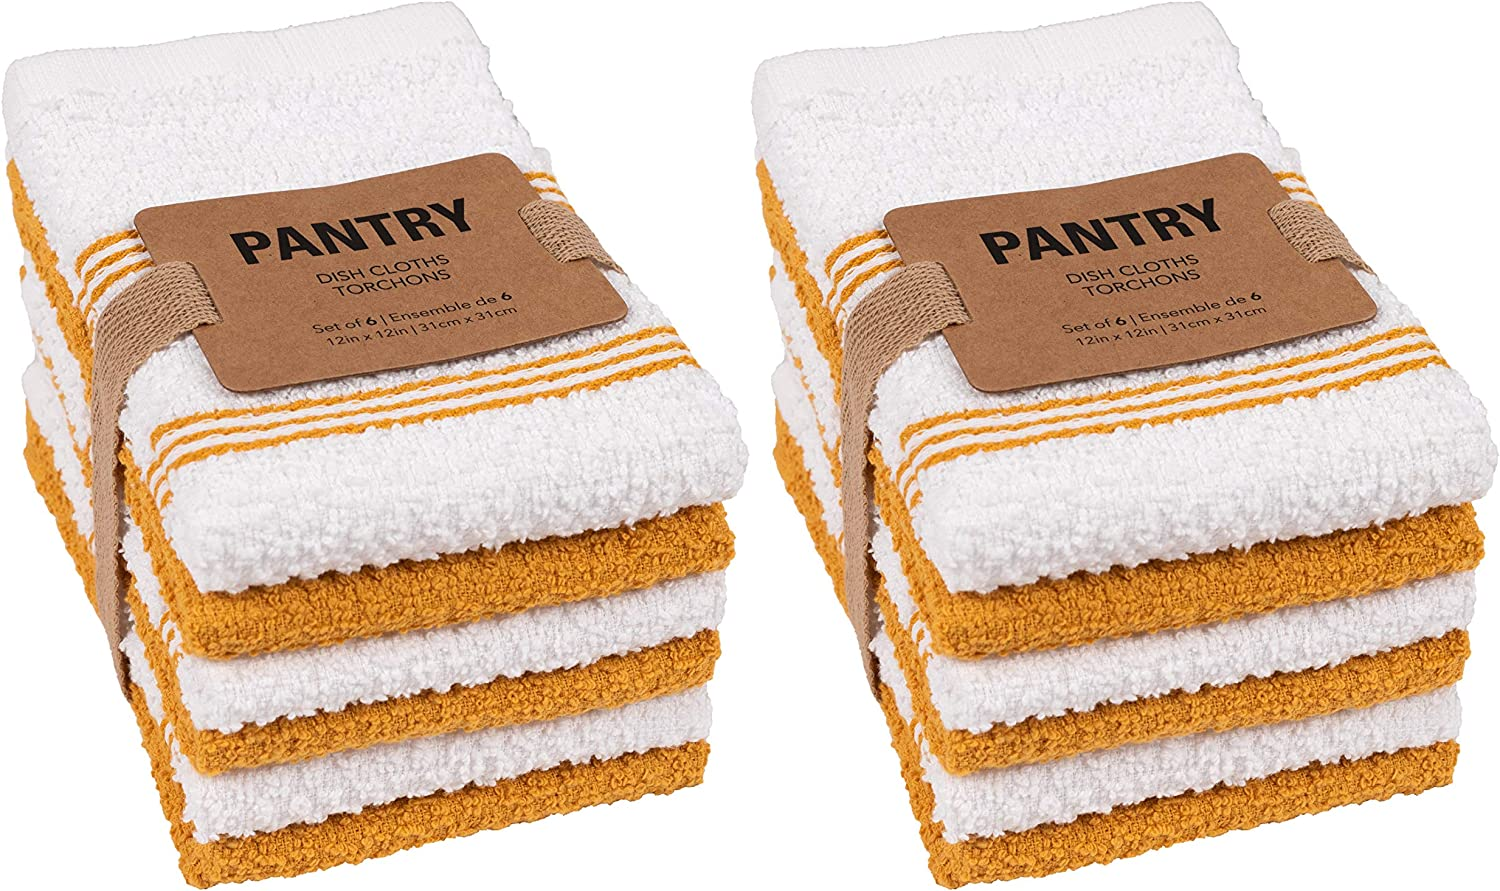 Harvest Ochre Perfect for Spills and Wiping Counter Tops KAF Home Pantry Piedmont Terry Dish Cloths Set of 12 Wash Cloths Absorbent Terry Dish Cloths 12 x 12 inches Bar Mop Rags